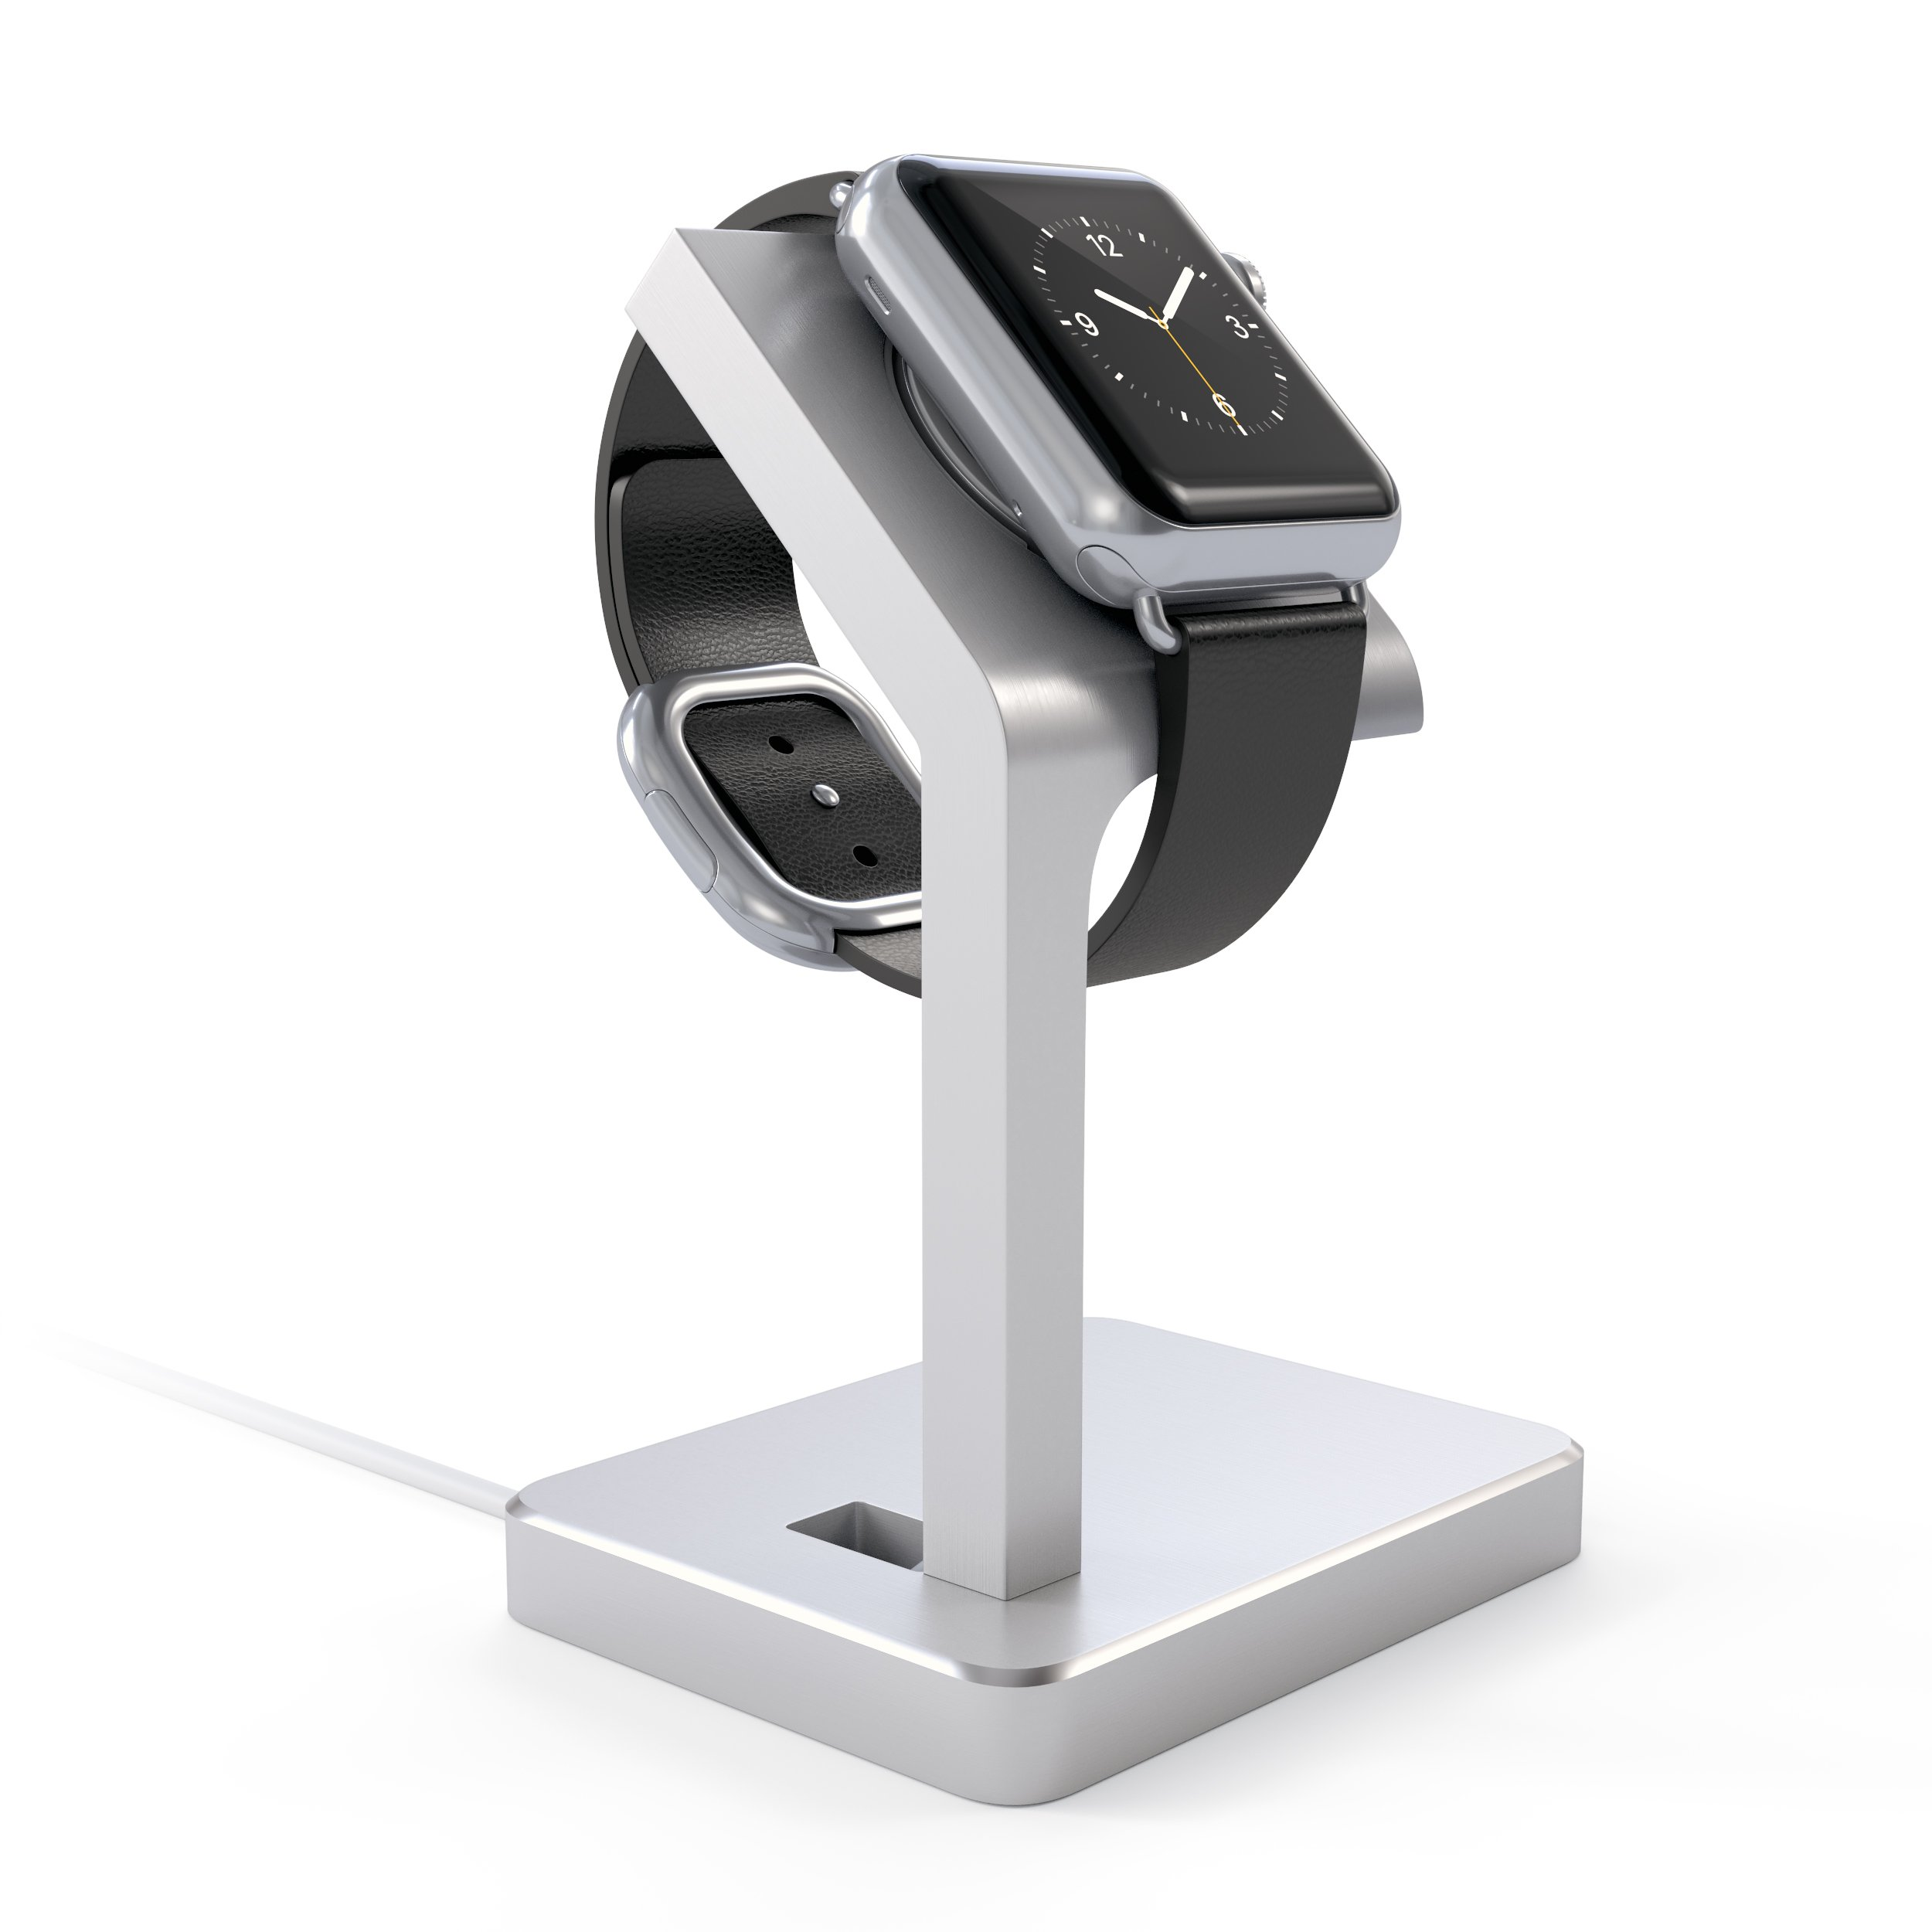 Satechi Apple Watch Series 1, 2 & 3 Stand, Aluminum Dock Apple Watch Station iWatch Bracket with Comfortable Viewing Angle for Apple Watch 42mm & 38mm All Models (Silver)